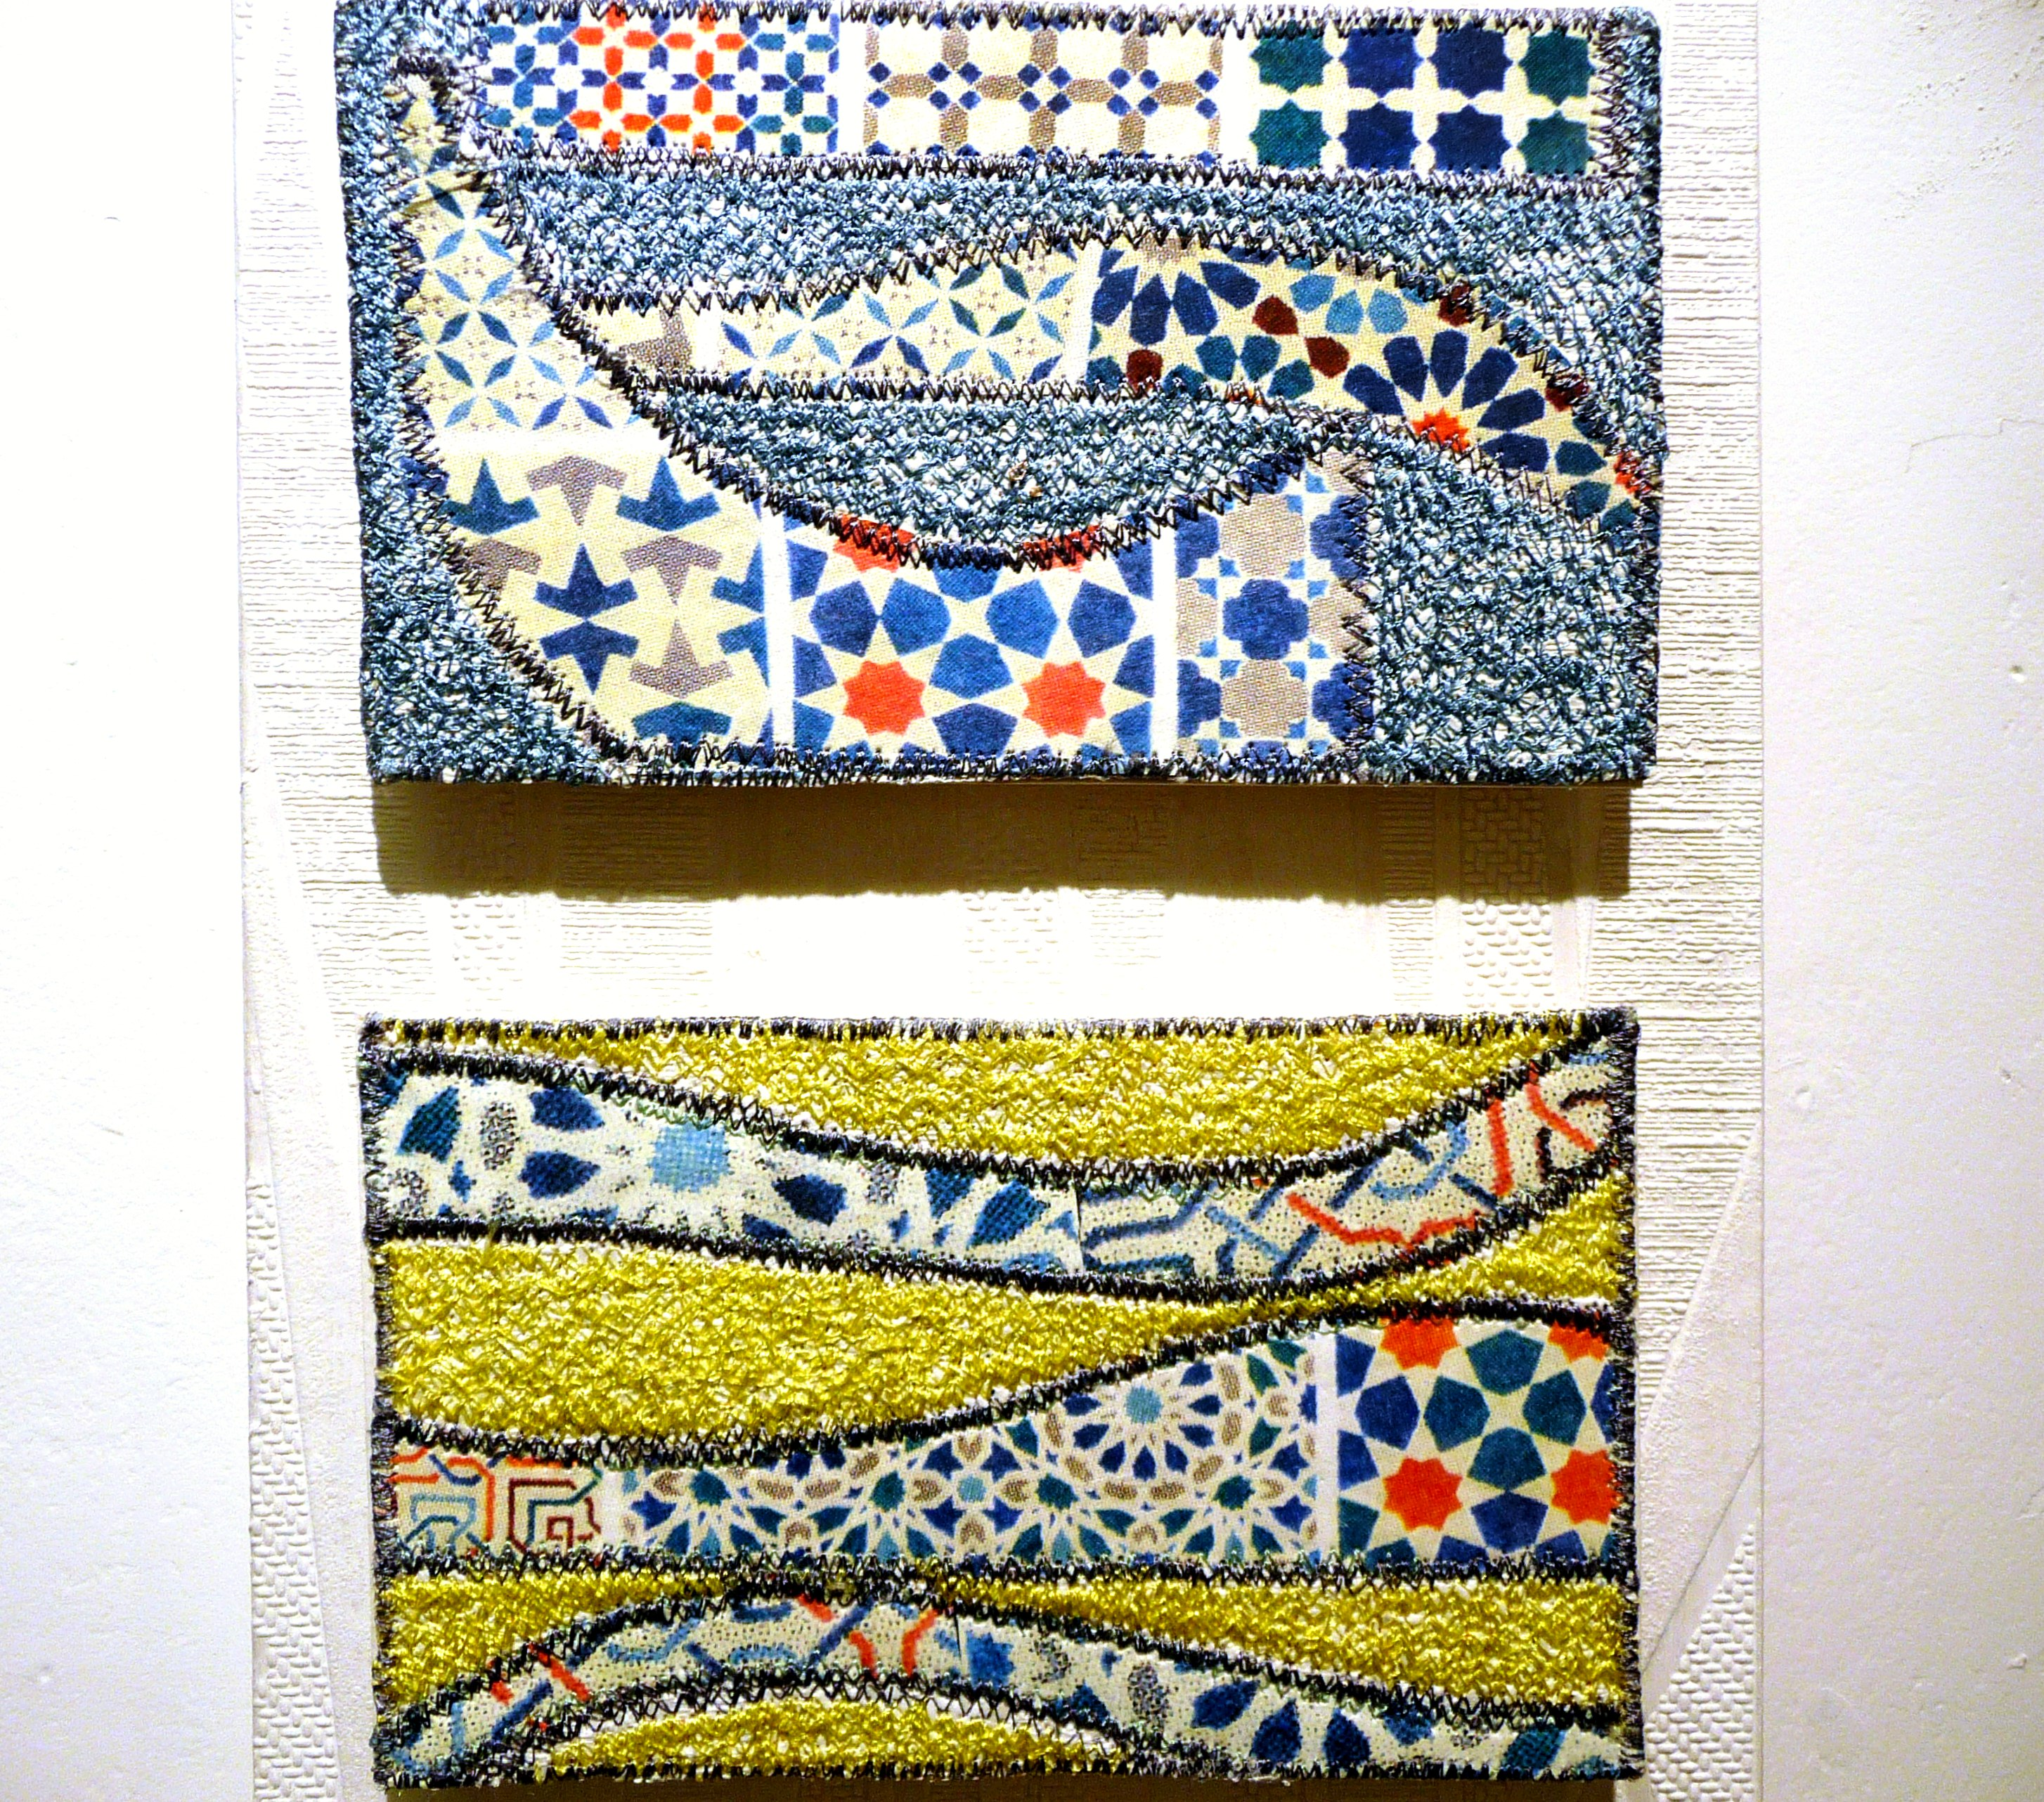 detail of ECHOES OF THE MOORS 1 by Doreen Sedat of TX Textiles group